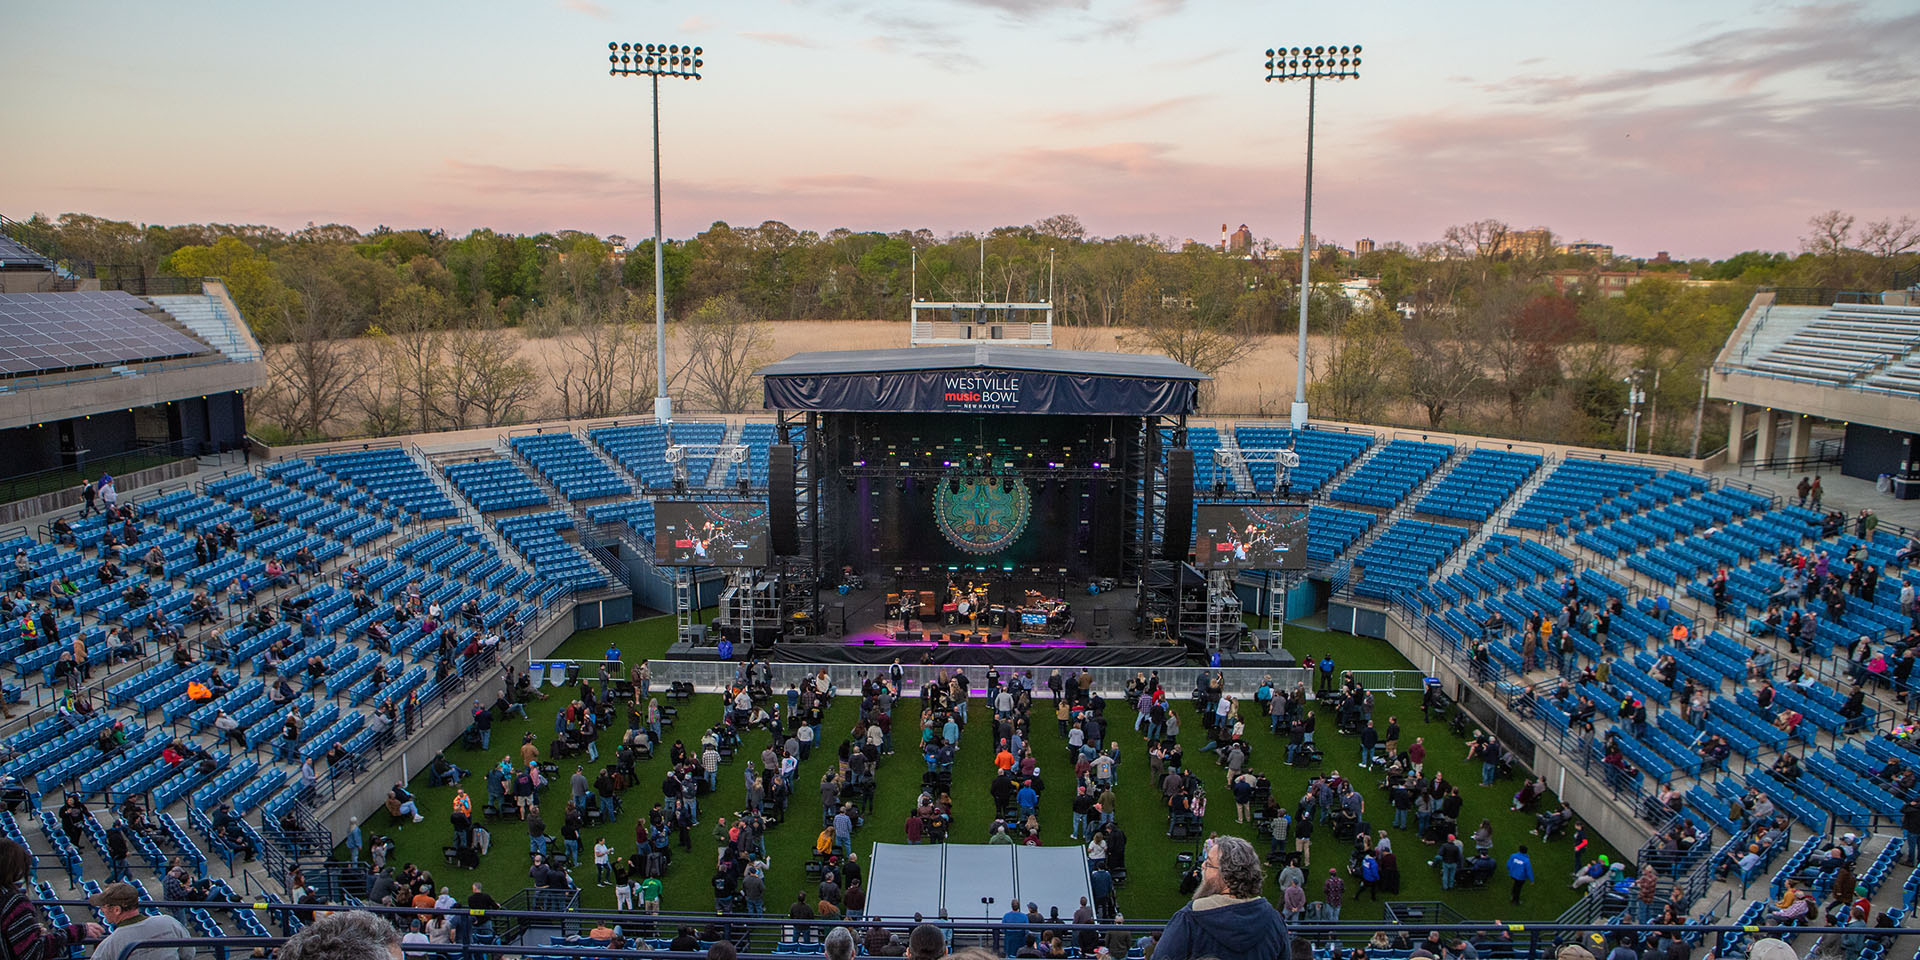 Former Tennis Stadium Serves Up Concerts